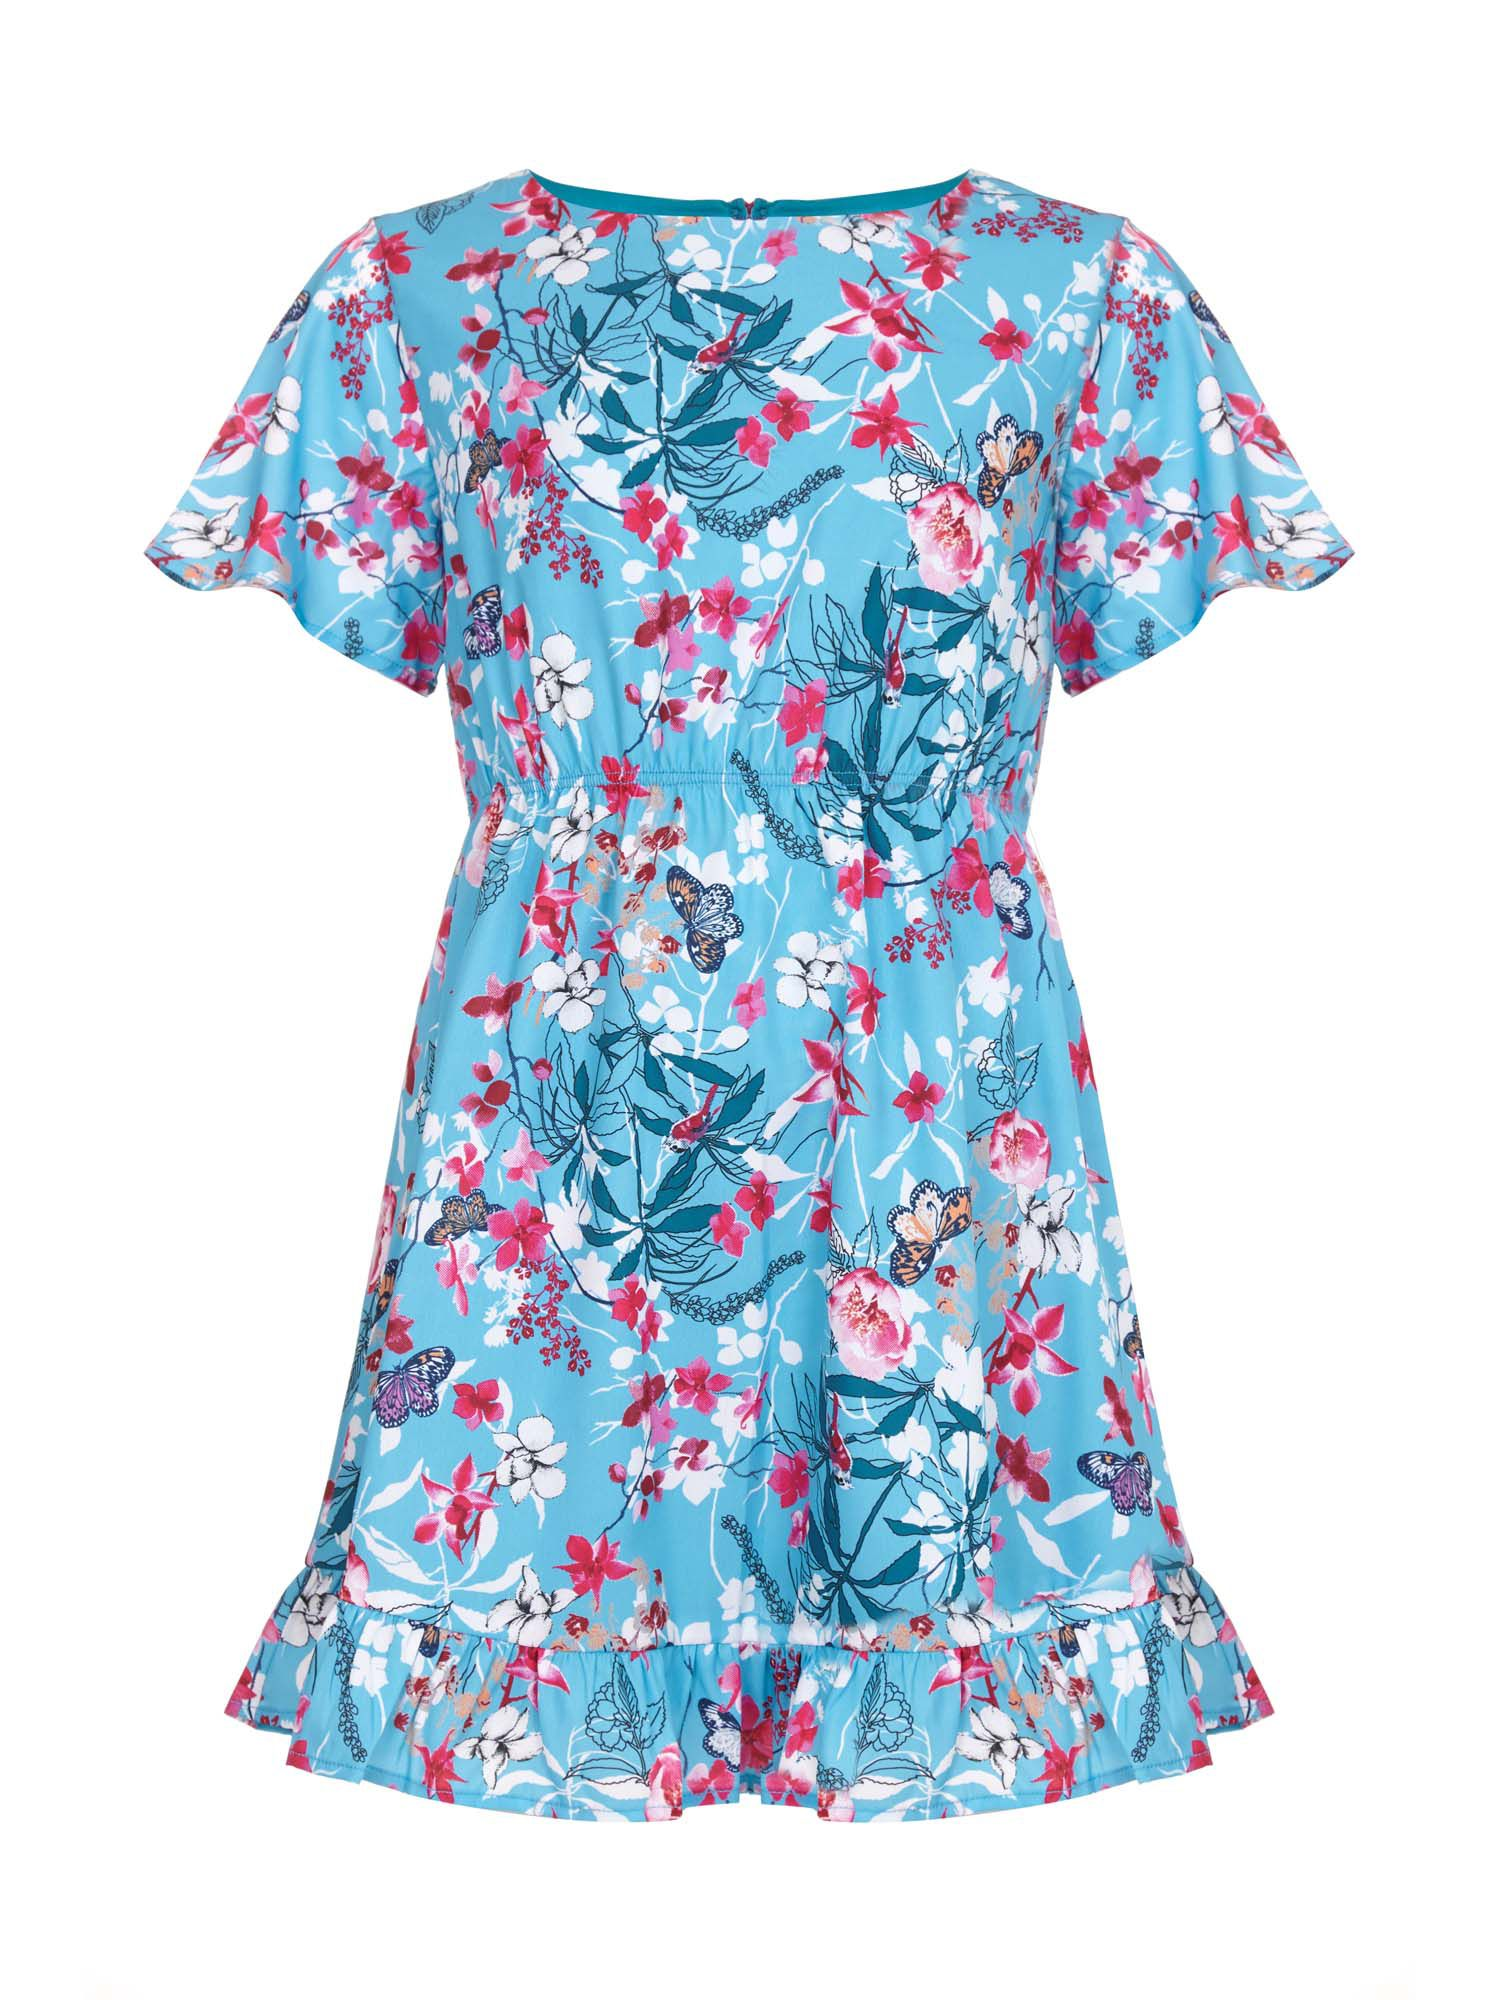 Yumi Girls Botanical Printed Dress, Blue